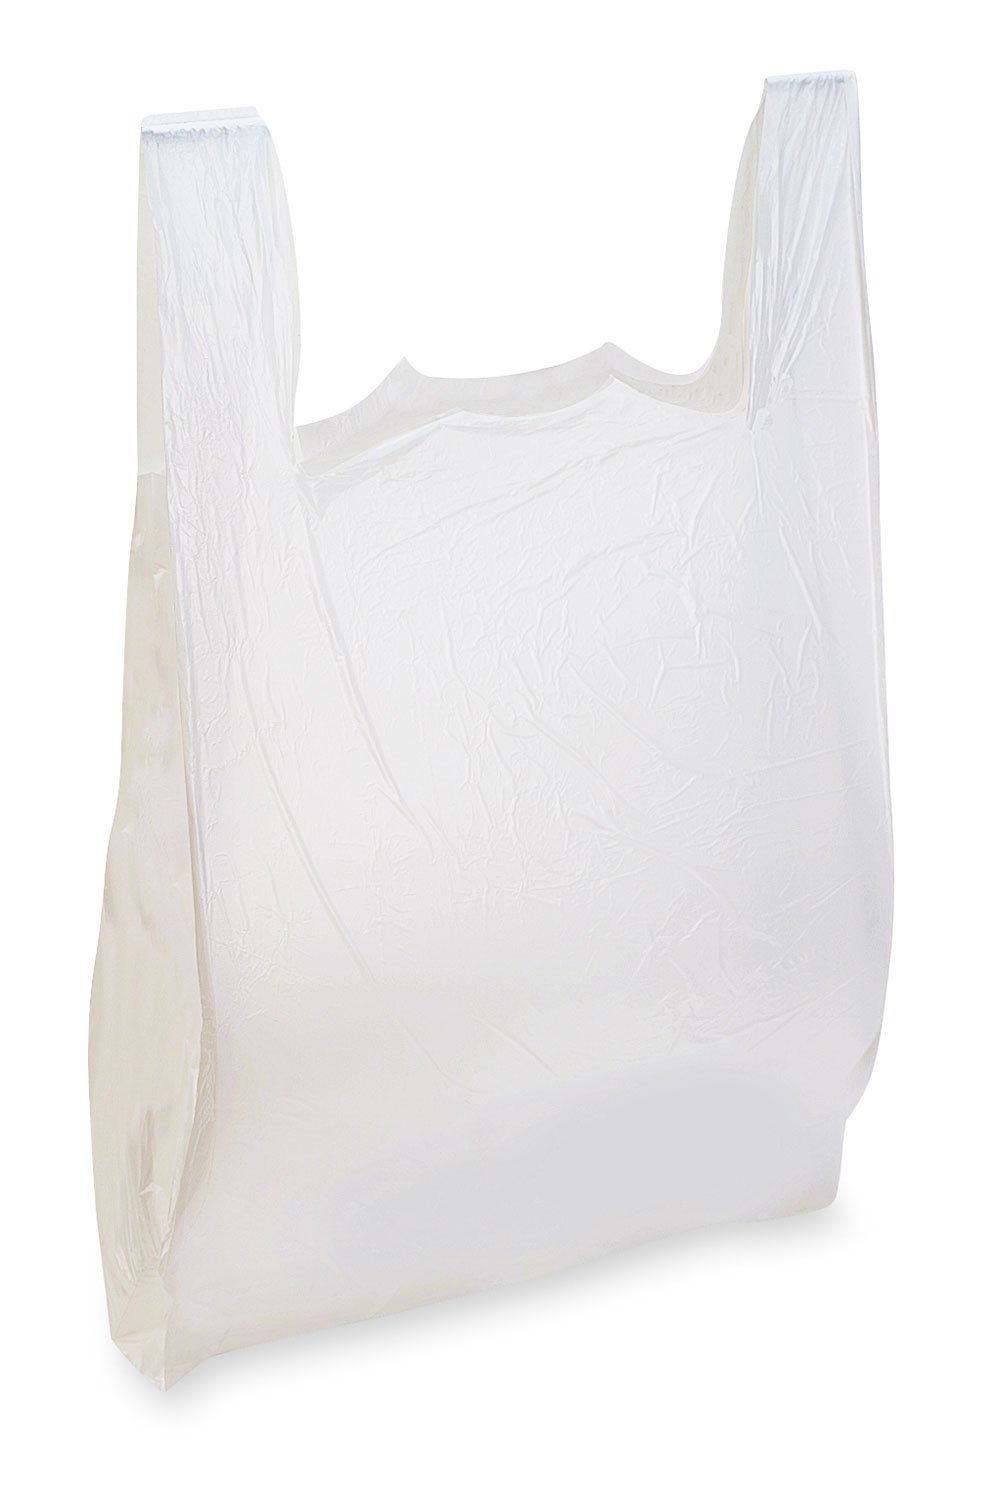 "T-Shirt Bags - .8 Mil. LDPE 1 color/2 sides - 11 x 7"" x 20"""